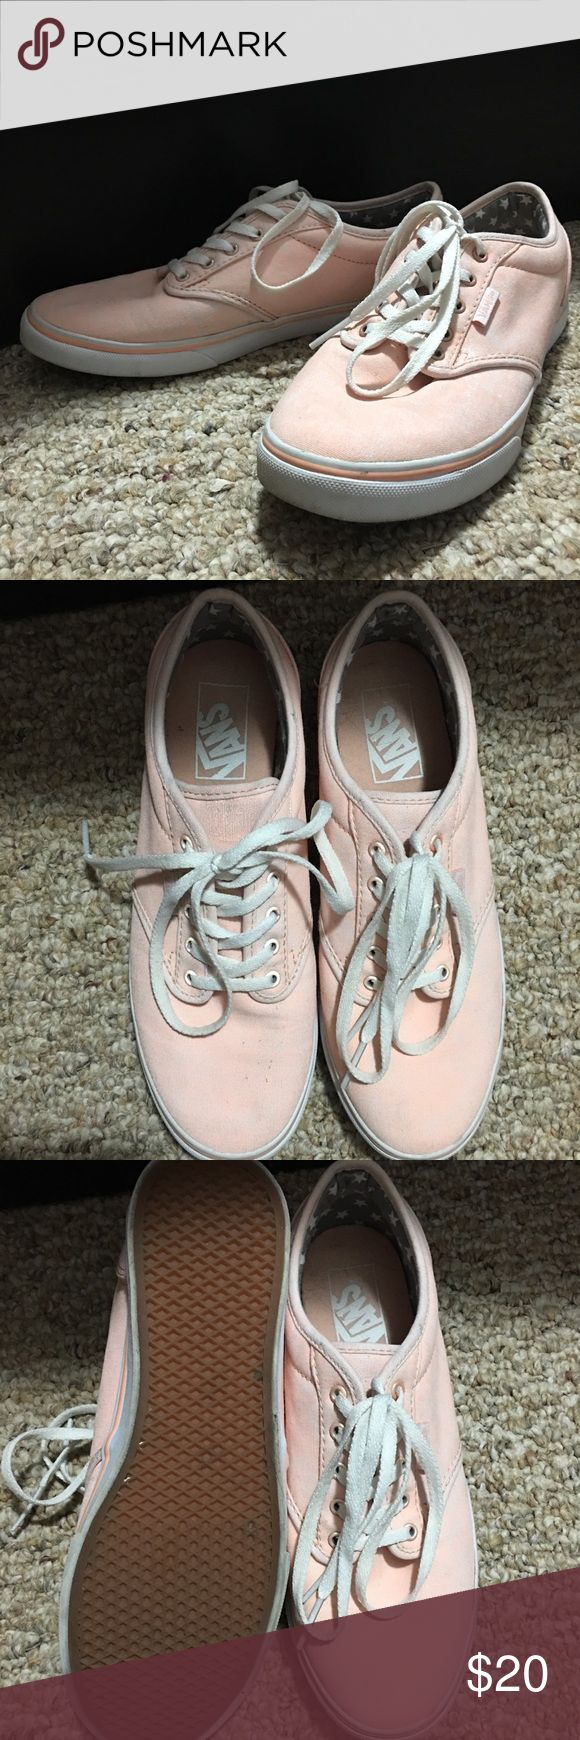 💢FINAL PRICE💢Women's Vans Women's size 7.5 coral Vans worn  a couple times. Does have a two stain spots. *does not come with original box. Vans Shoes Sneakers